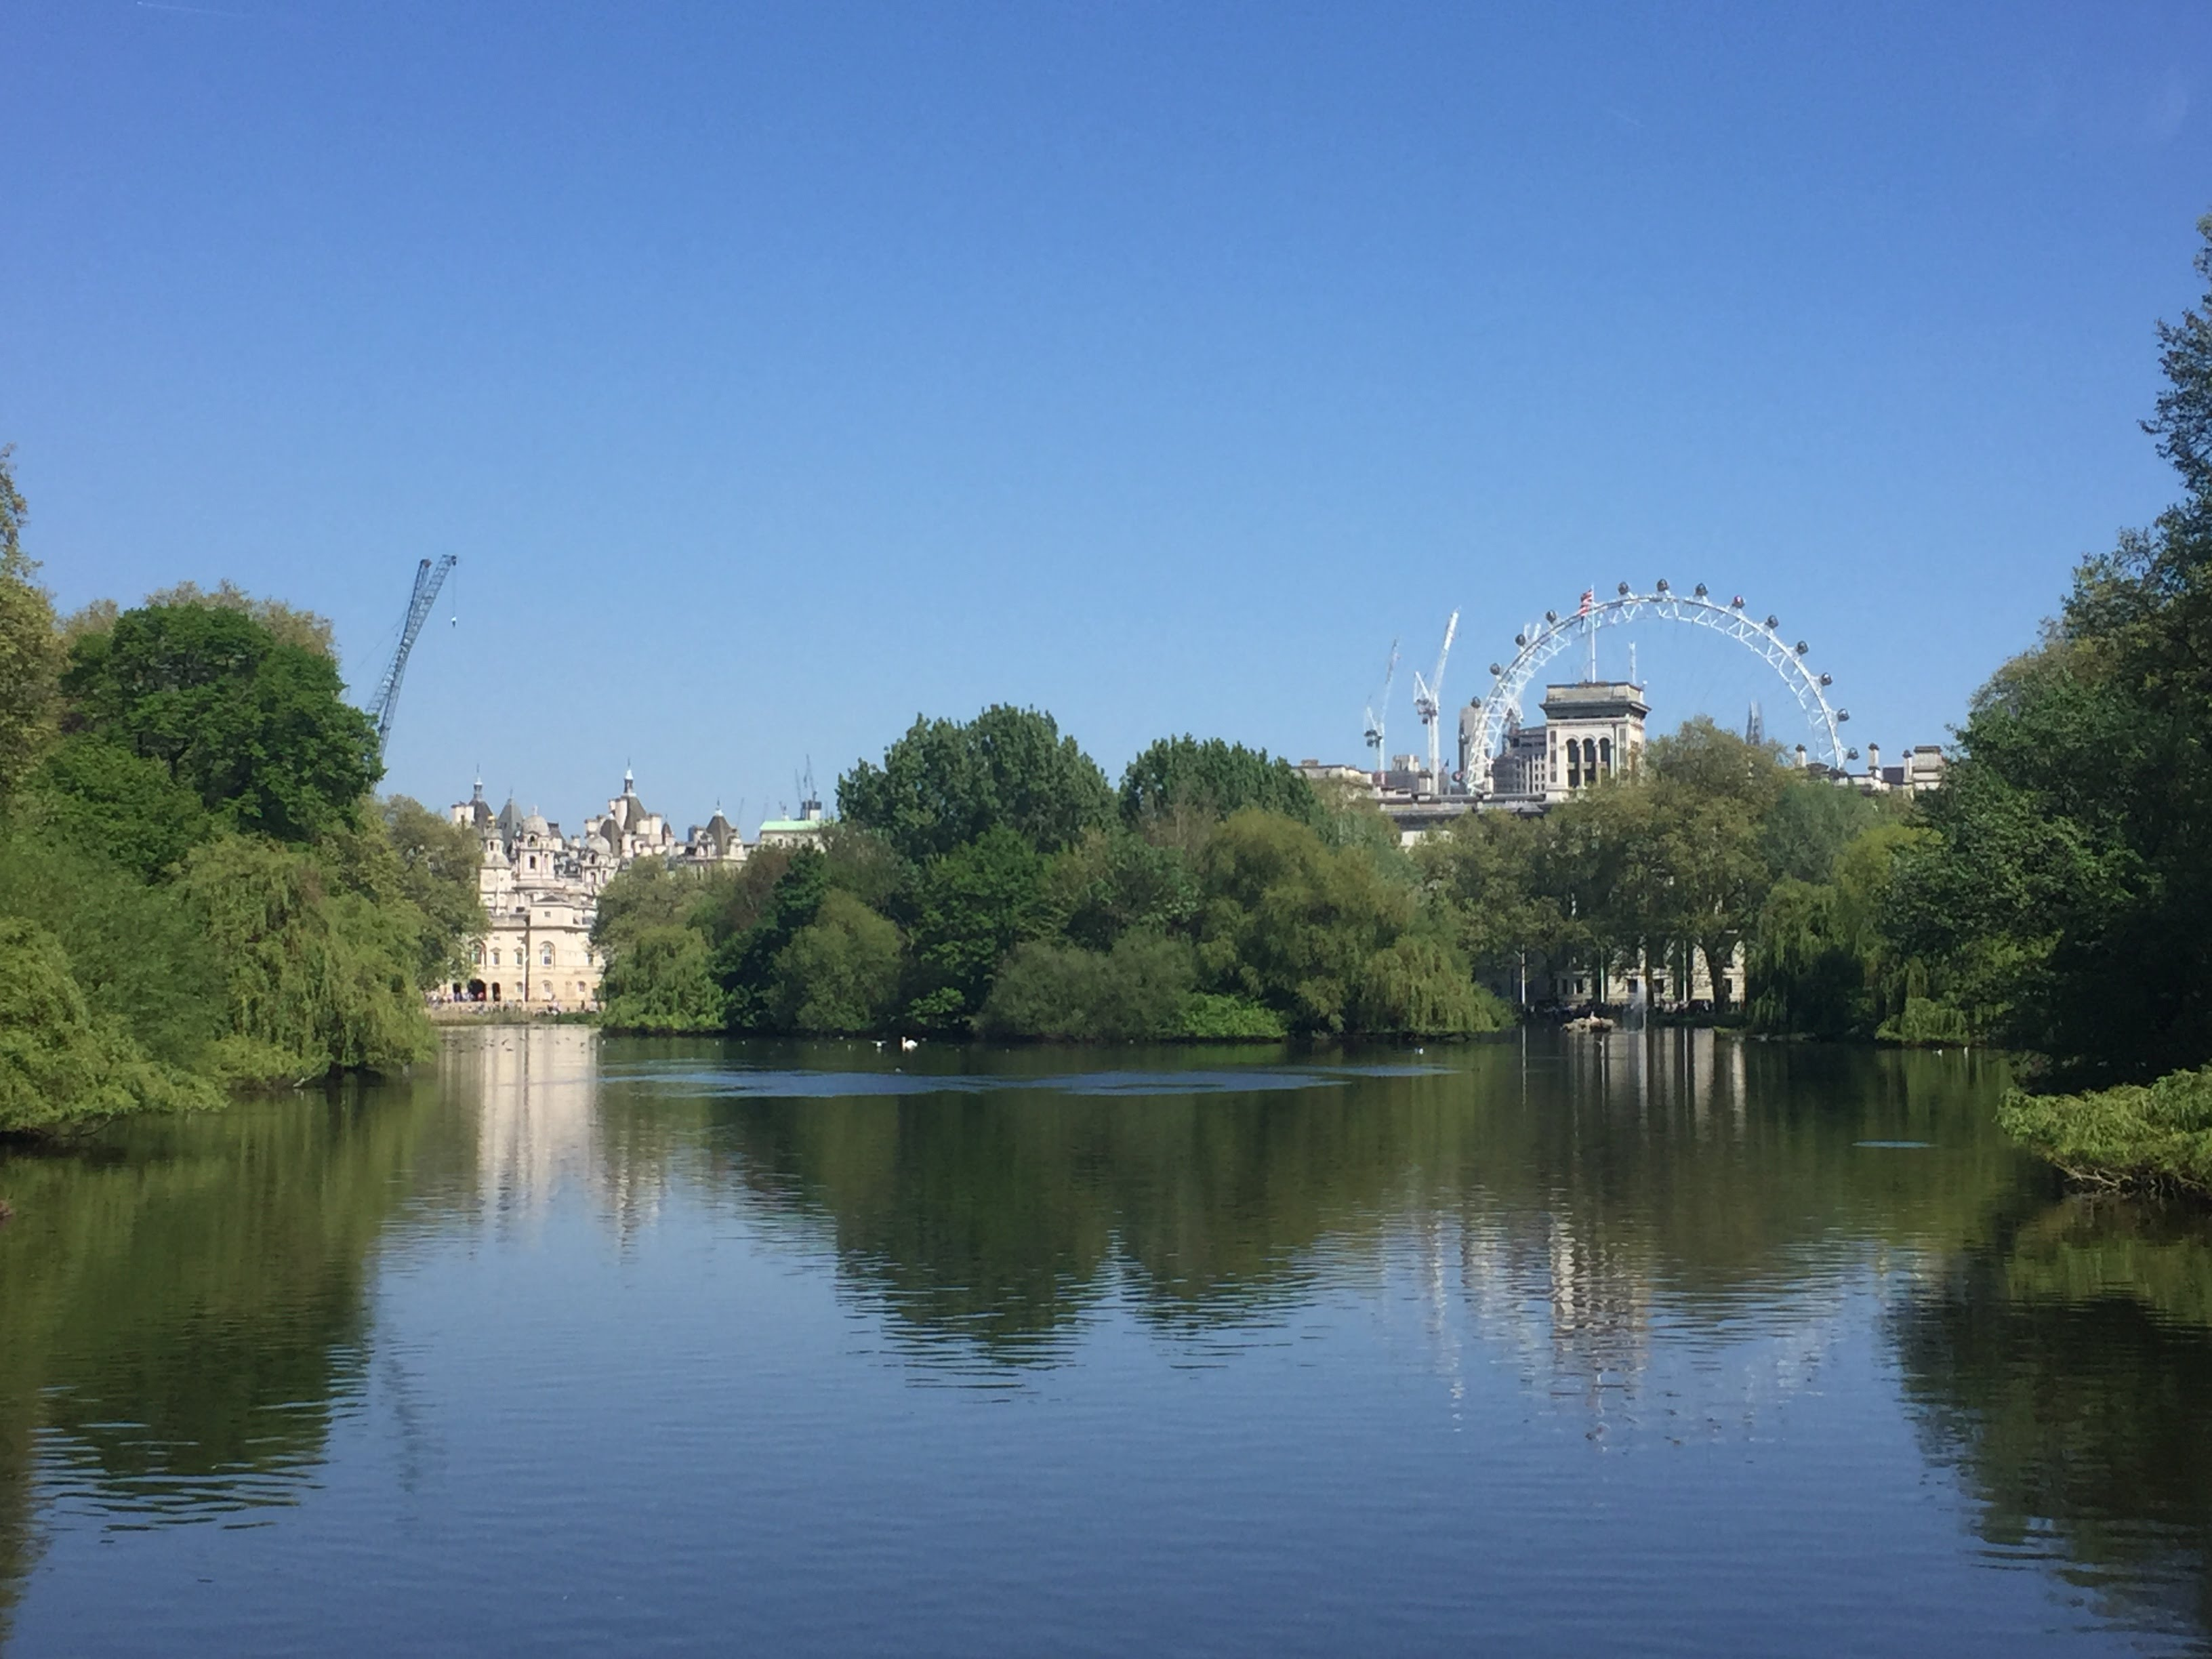 St james park, london eye, london, southbank, travels, travelling, city, london blog, blog, travel blog,